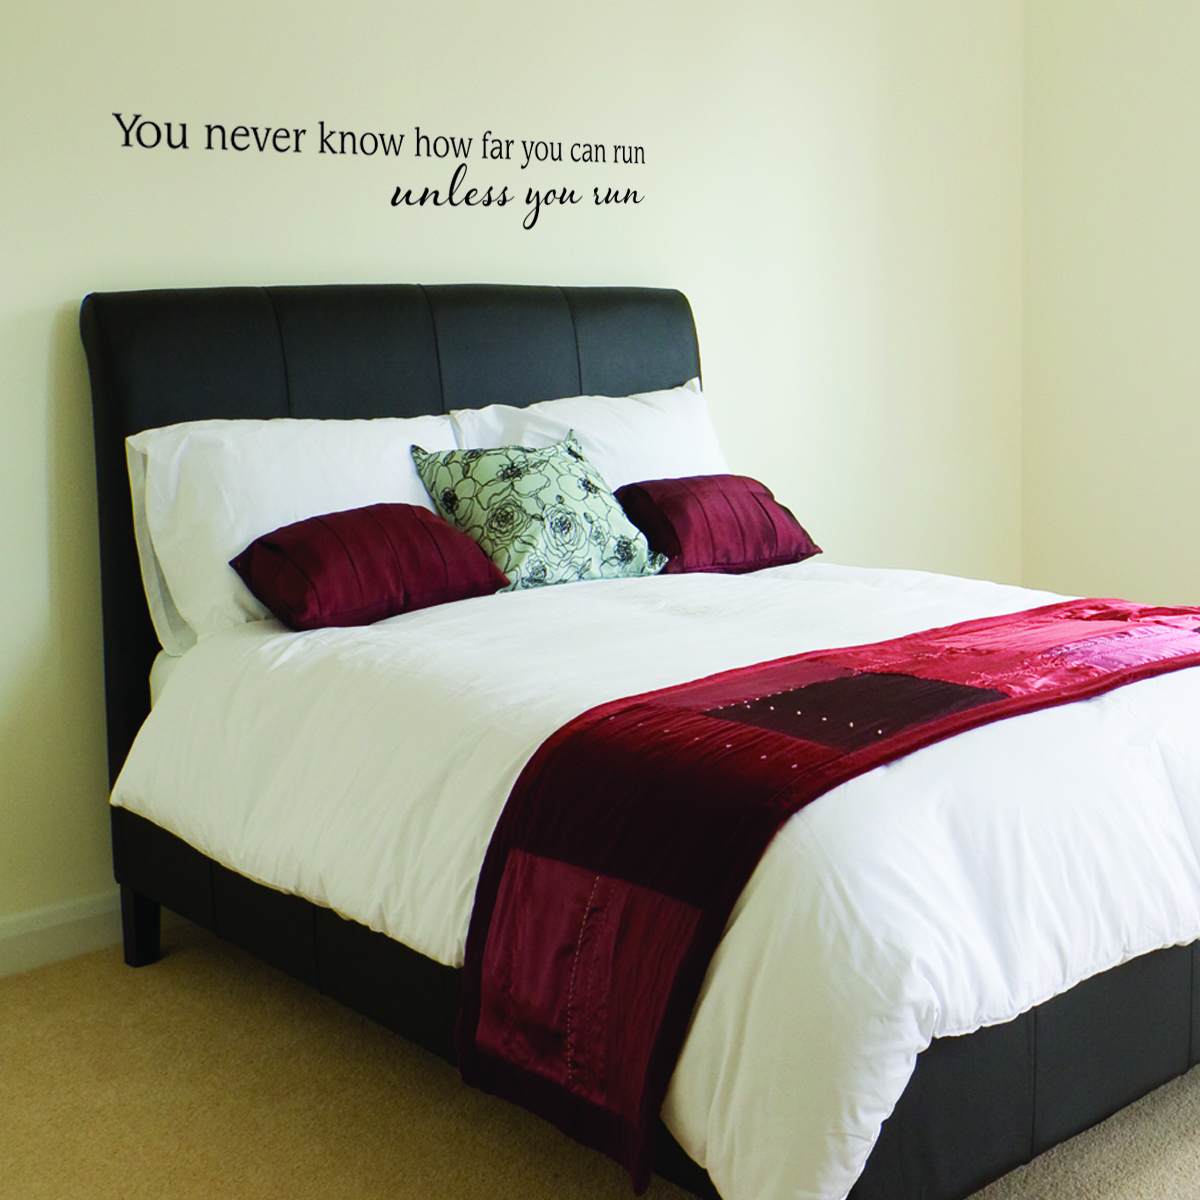 Unless You Run Wall Quotes Decal WallQuotescom - Wall decals above bed